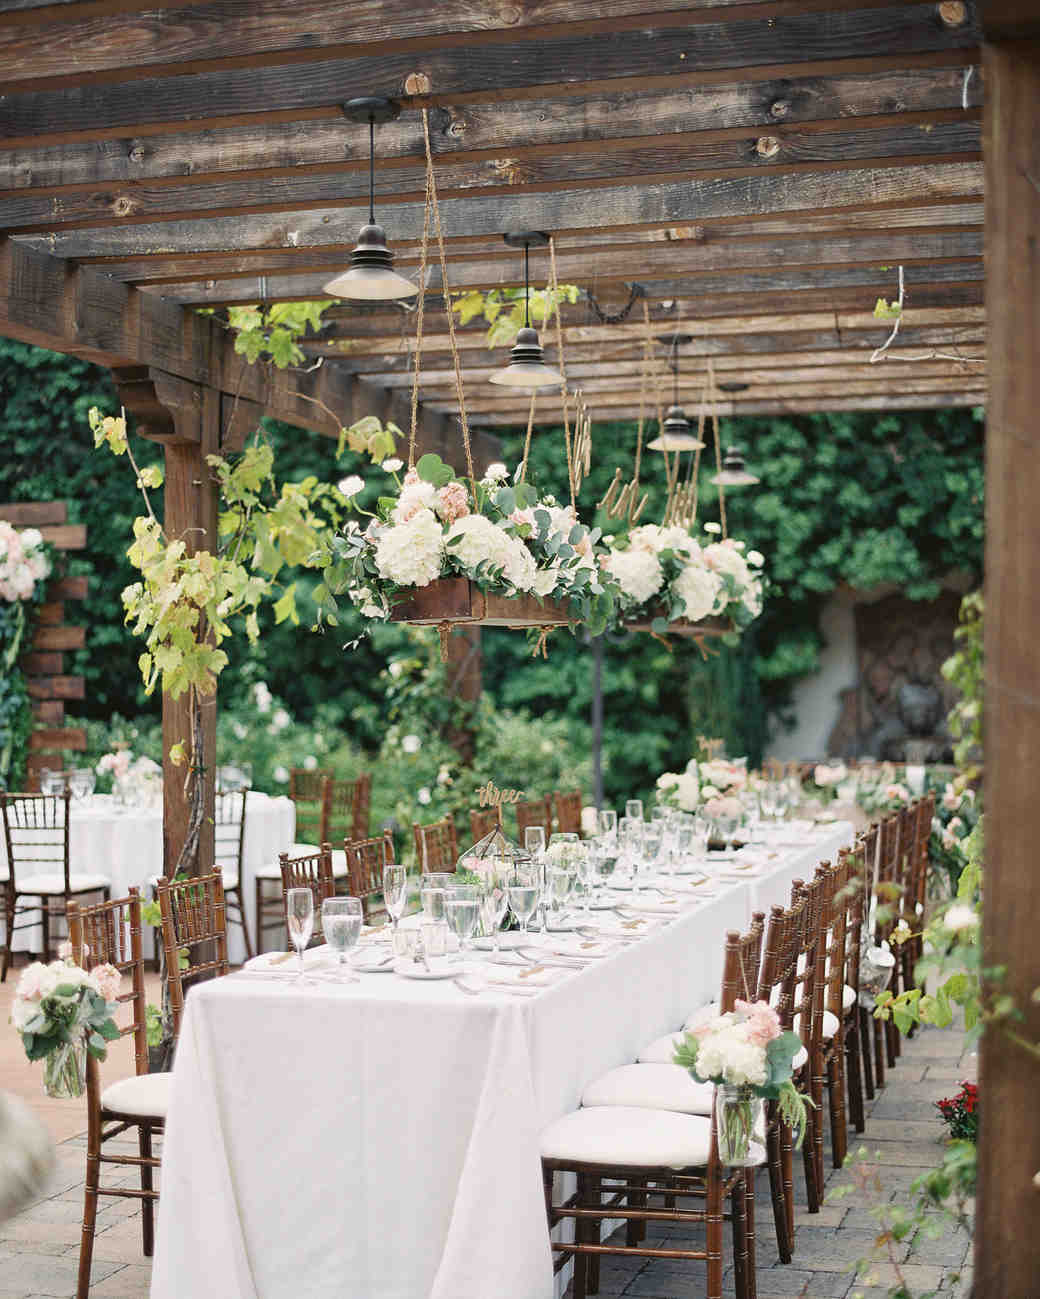 Wedding Tables Ideas: 28 Ideas For Sitting Pretty At Your Head Table